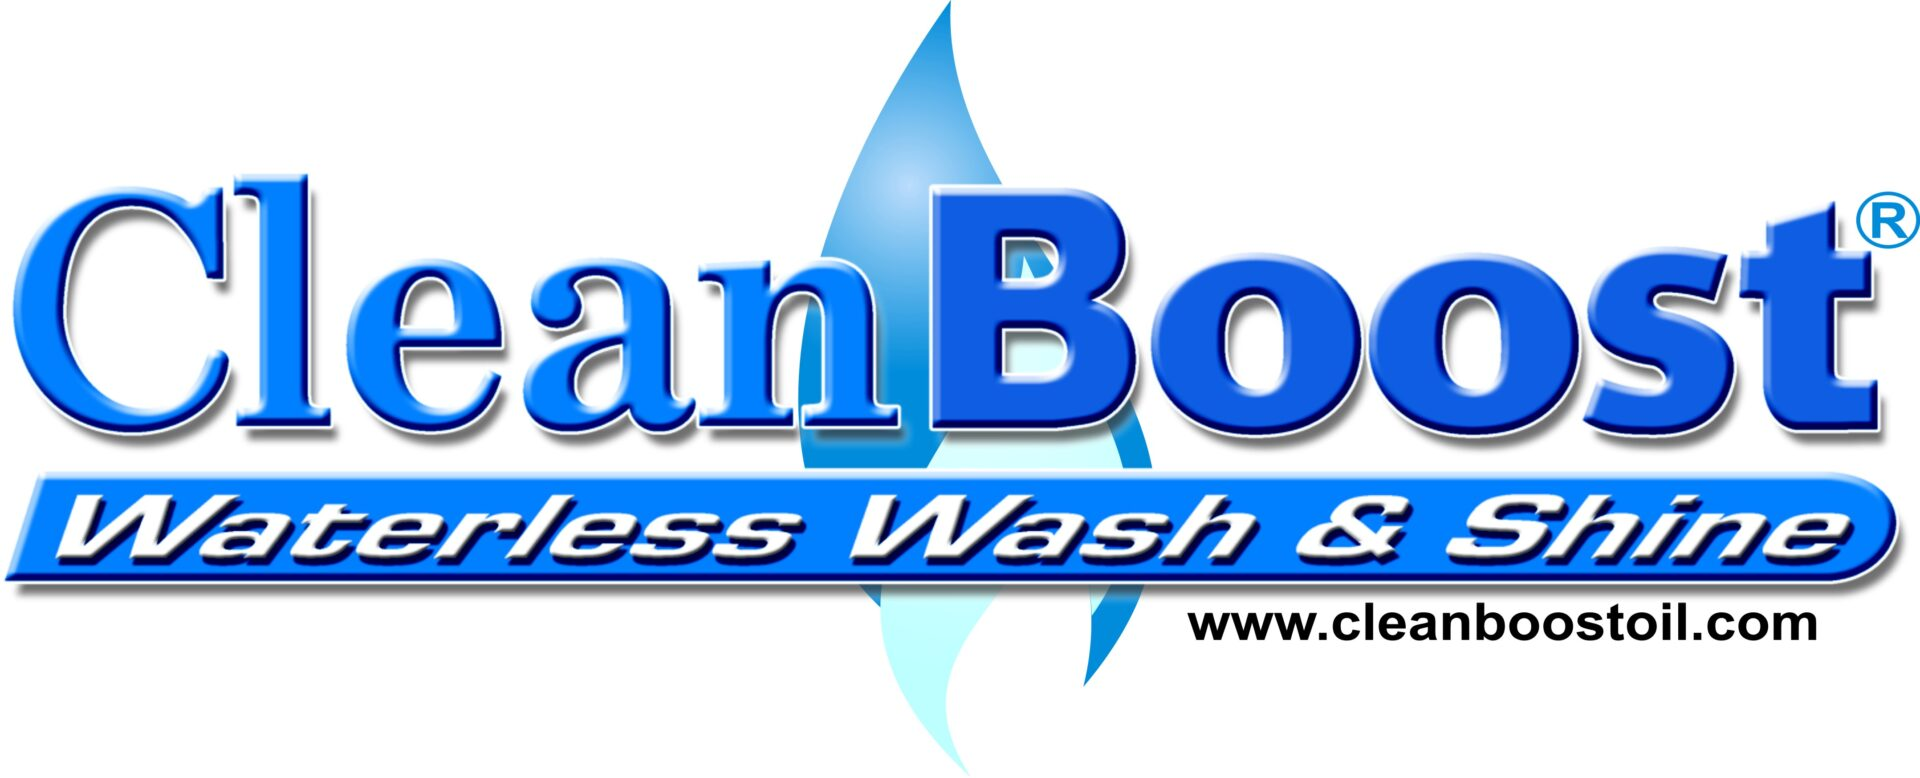 Cleanboost Wash & Shine